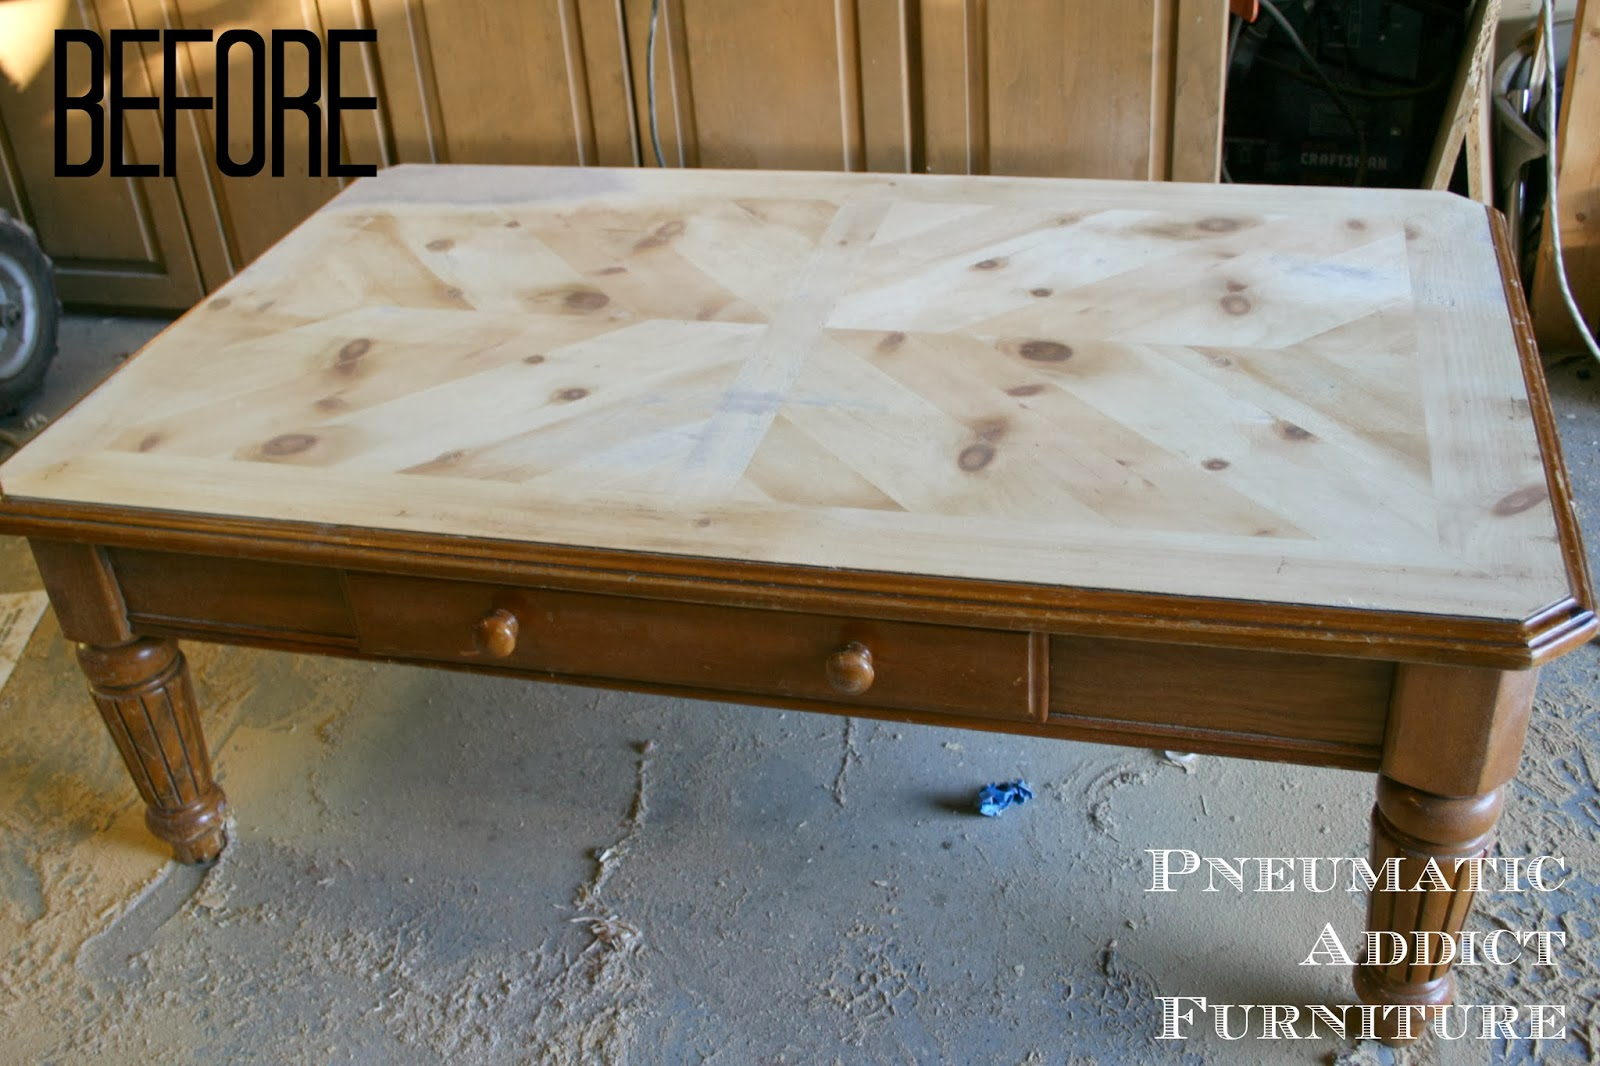 Case In Point This Solid Pine Coffee Table